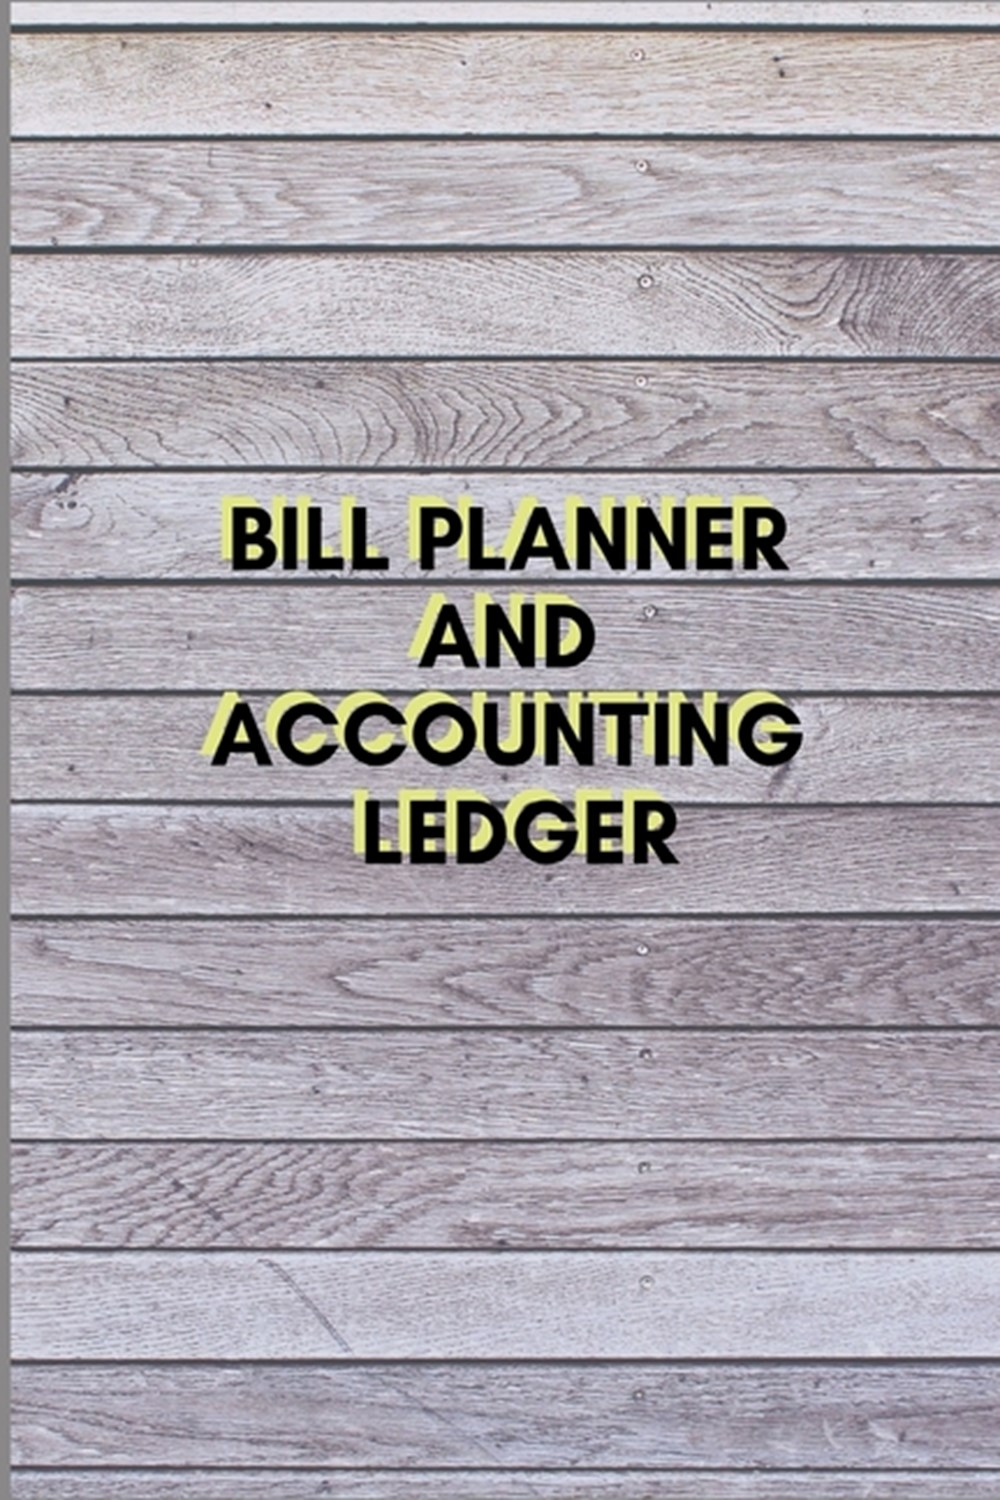 Bill Planner and Accounting Ledger Simple Balance sheet or Cash Book Accounts Bookkeeping Journal fo